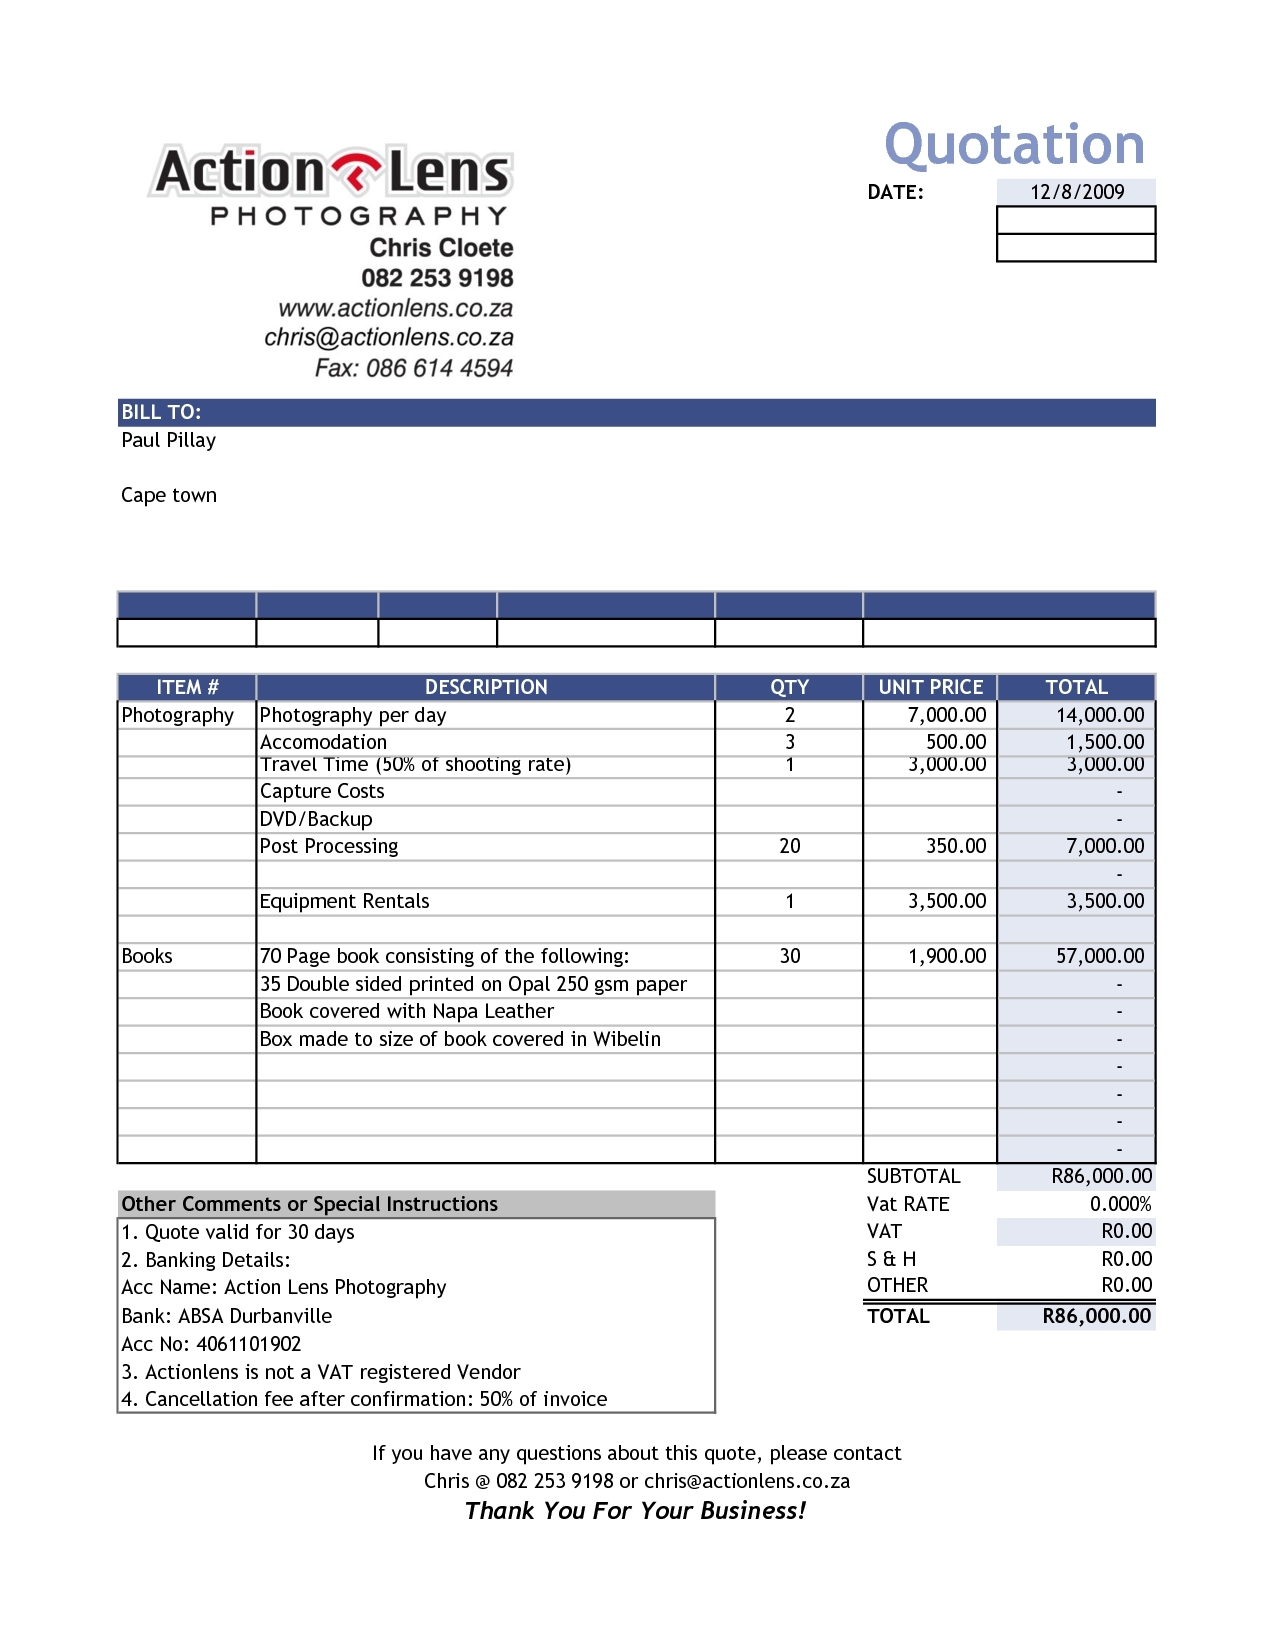 Sale Invoice Format In Excel Free Download